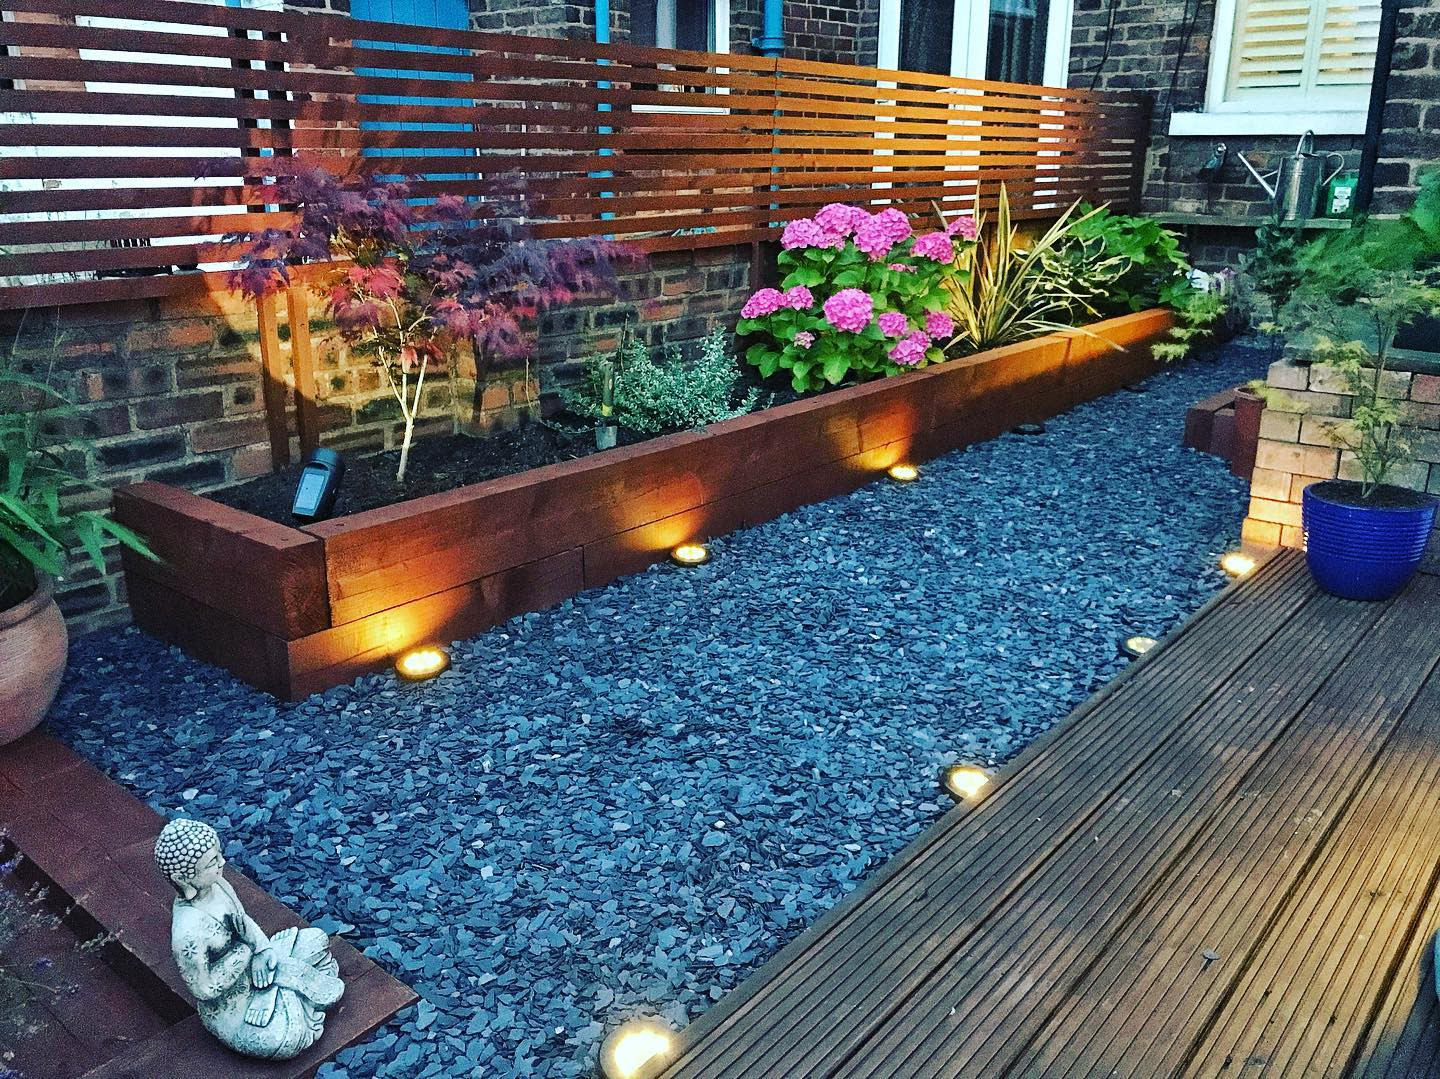 Gardening Backyard Landscaping Ideas on a Budget -sampearsongardenprojects